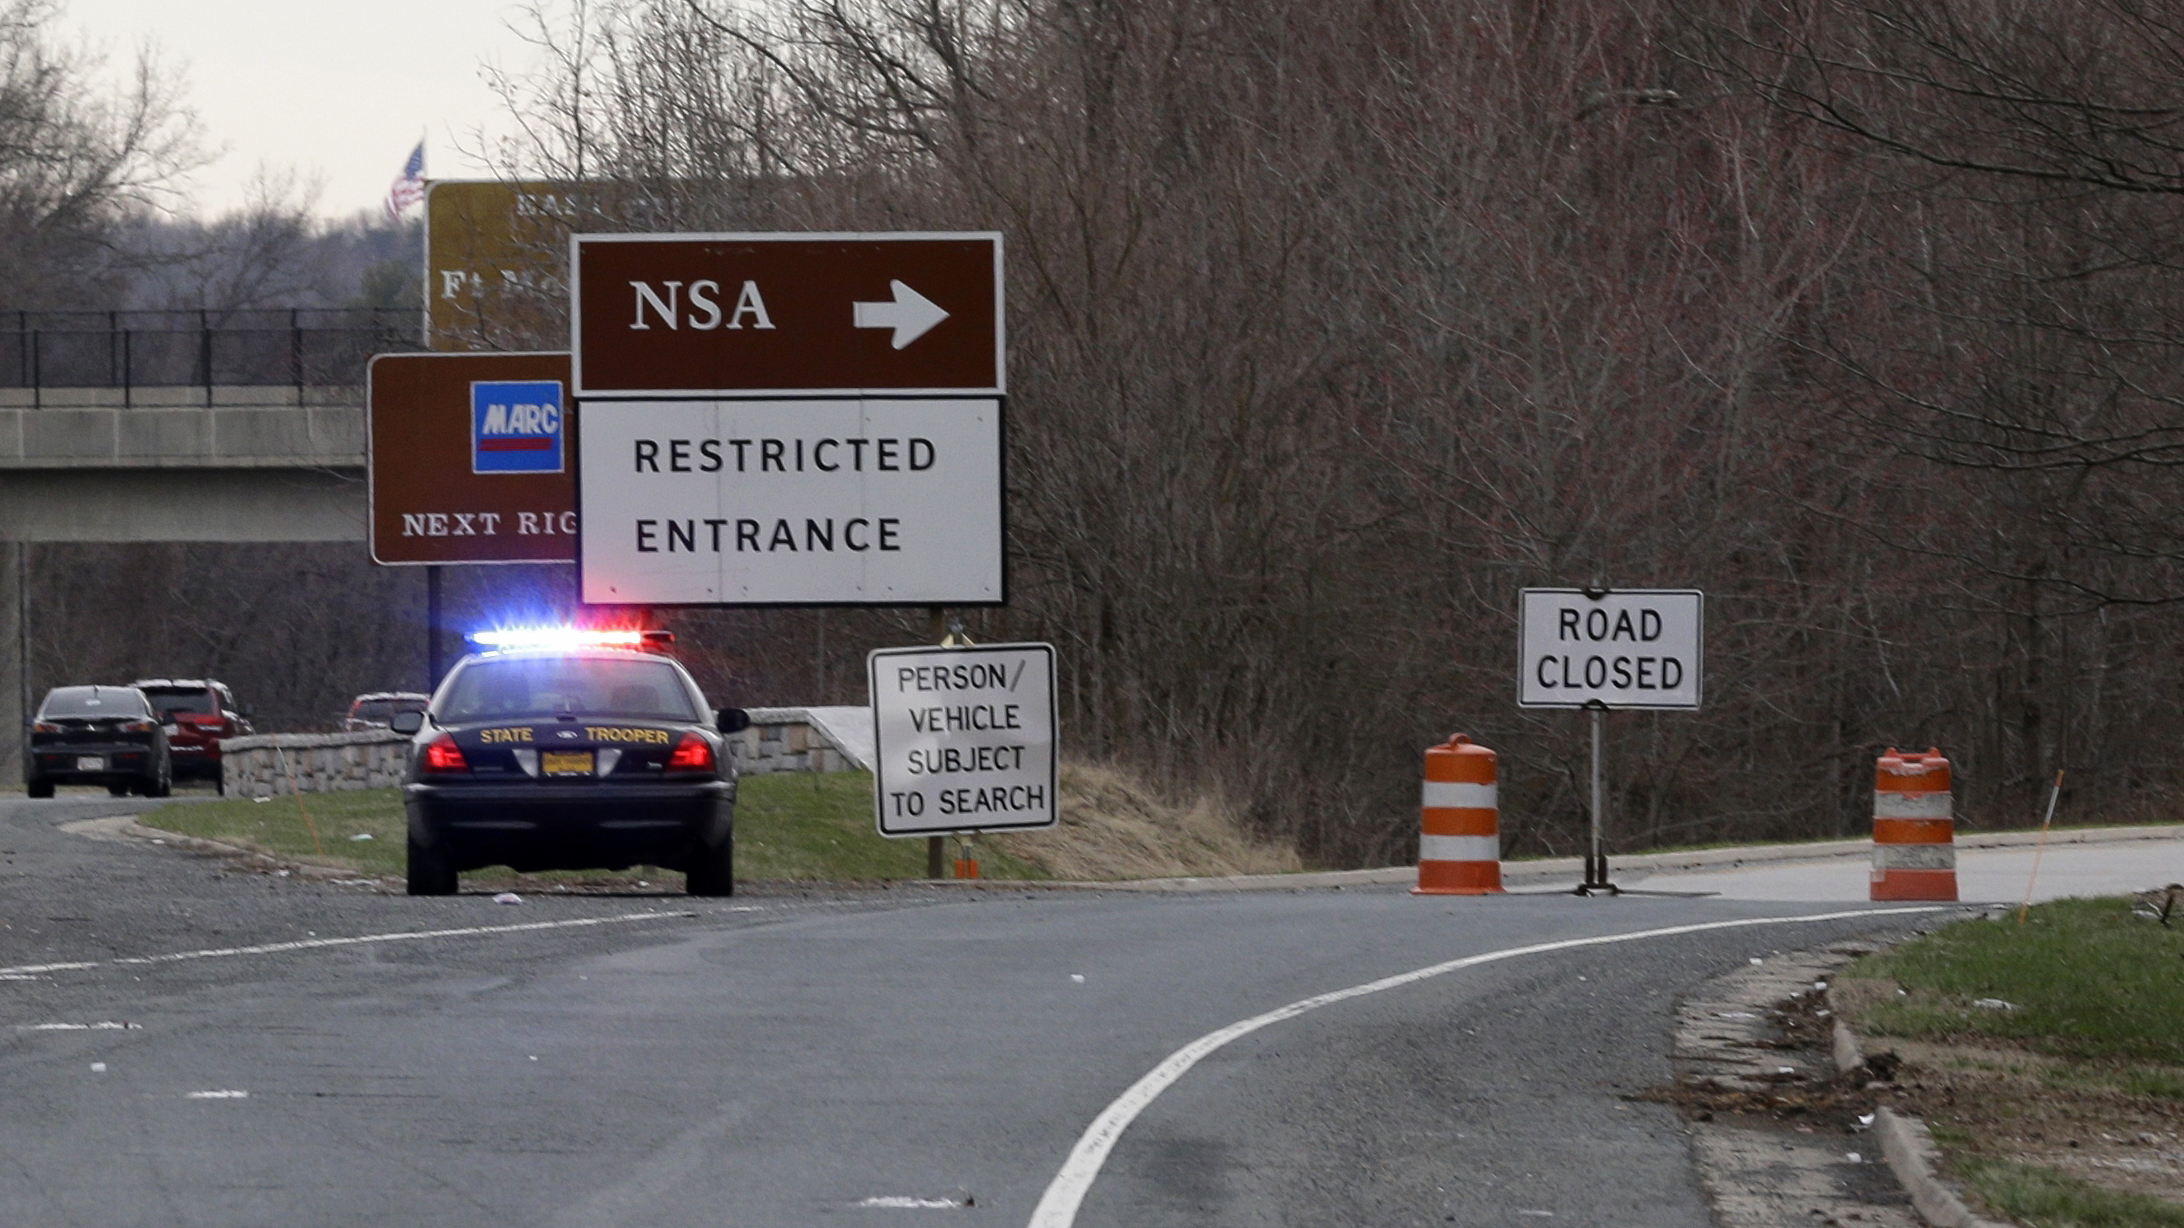 1 Death Reported Outside NSA After Car Tried To Ram Security Gate